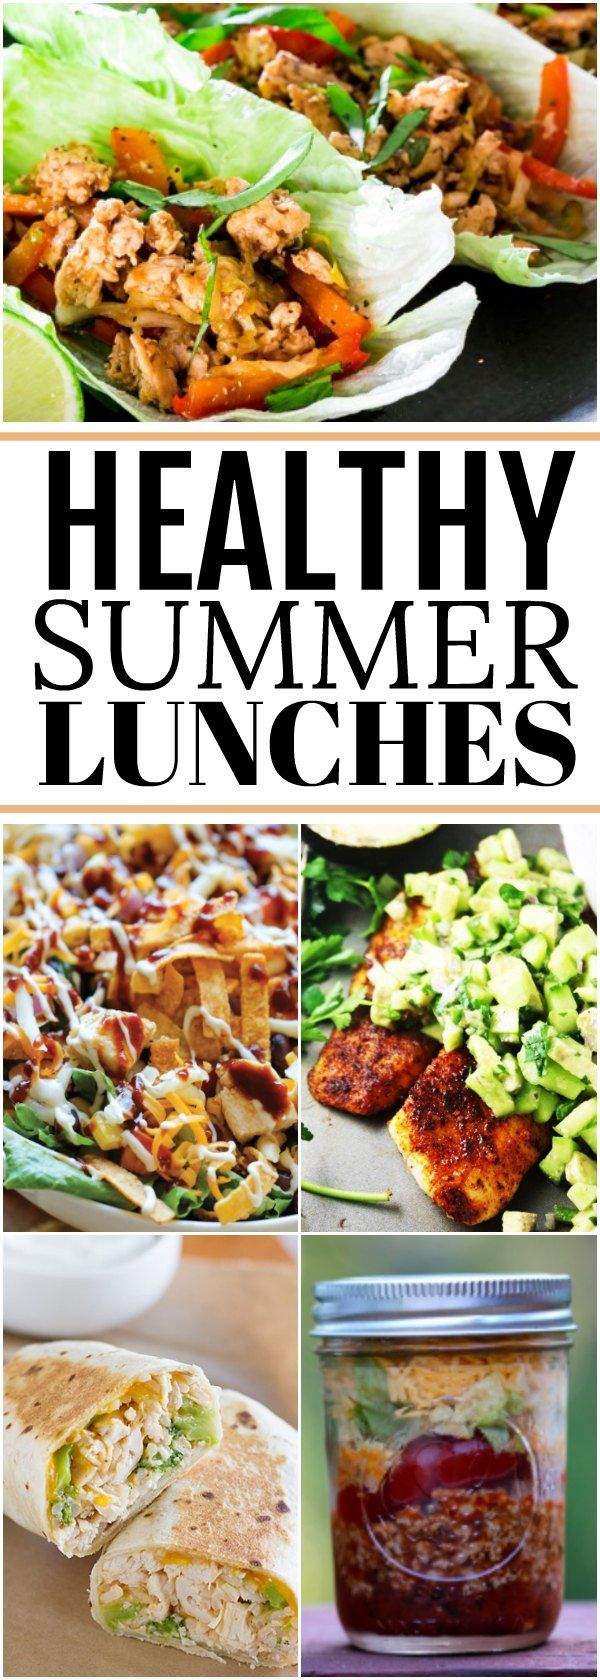 Healthy lunch recipes- Summer lunch recipes you can make quickly!